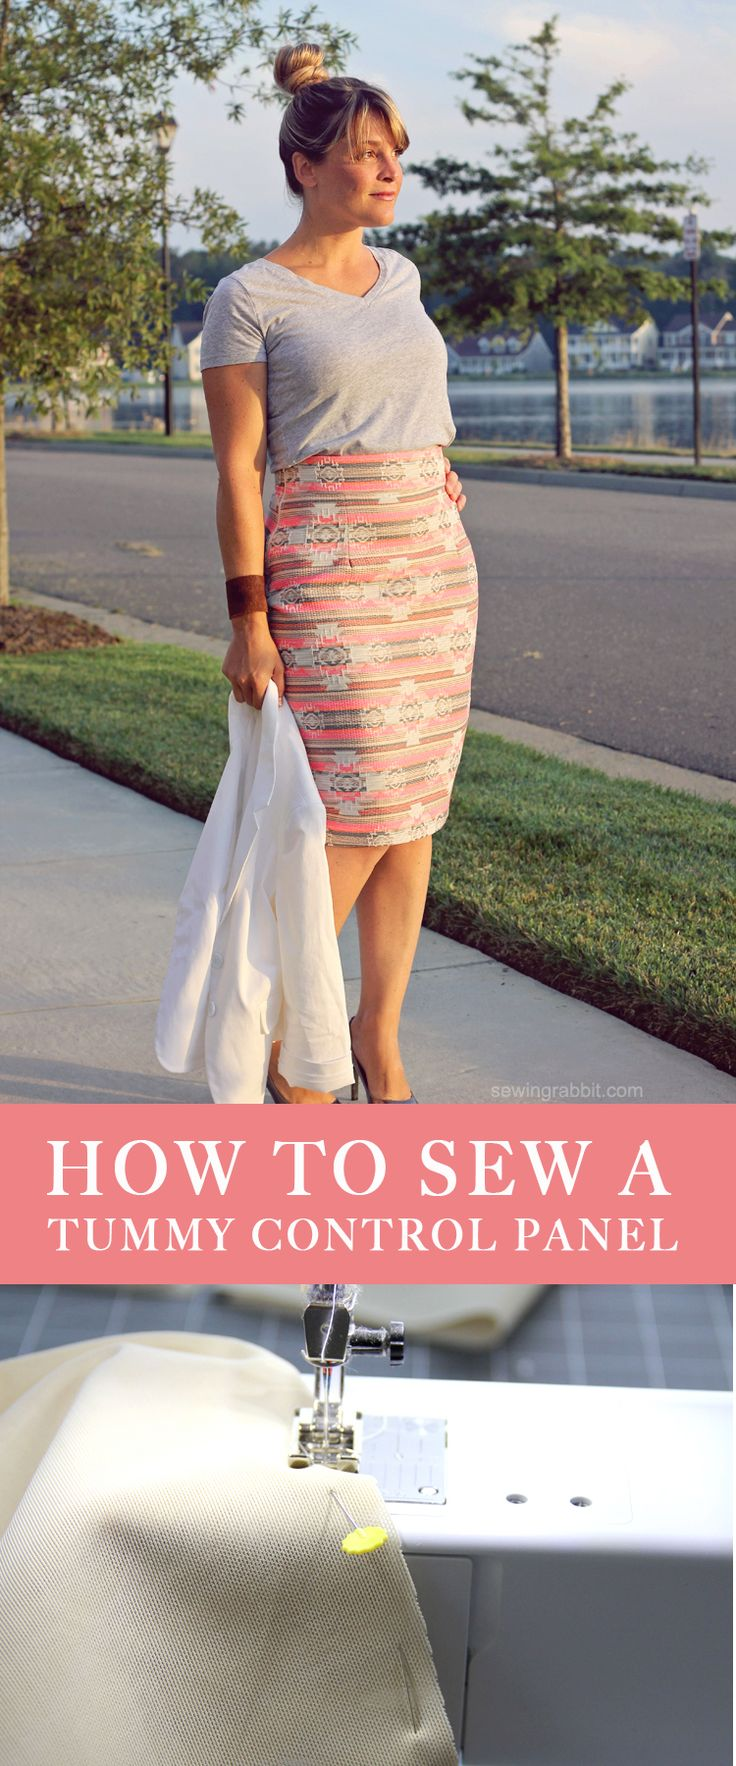 [how to sew a tummy control panel] putting power mesh into a pencil skirt in lieu of lining